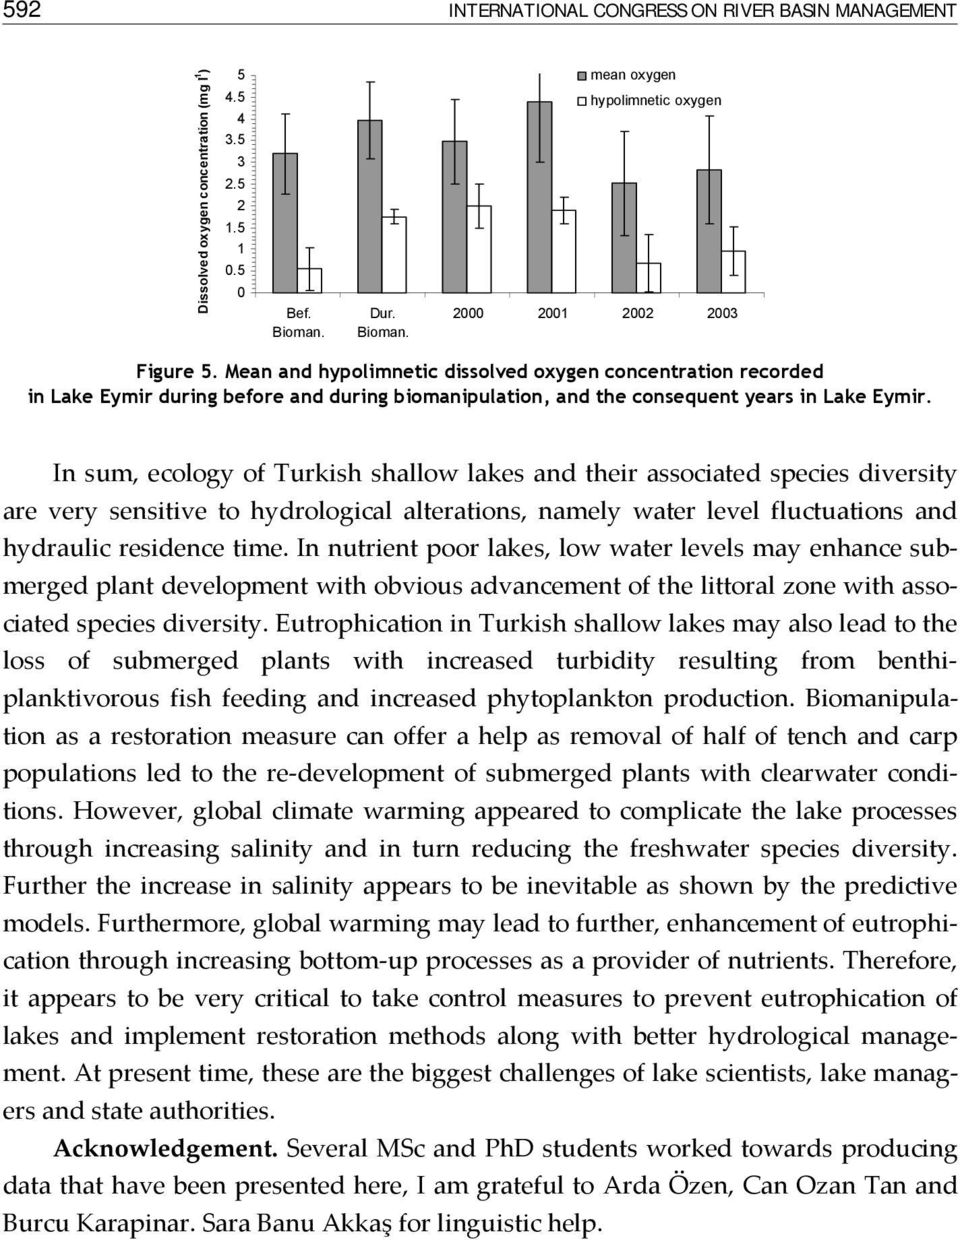 In sum, ecology of Turkish shallow lakes and their associated species diversity are very sensitive to hydrological alterations, namely water level fluctuations and hydraulic residence time.